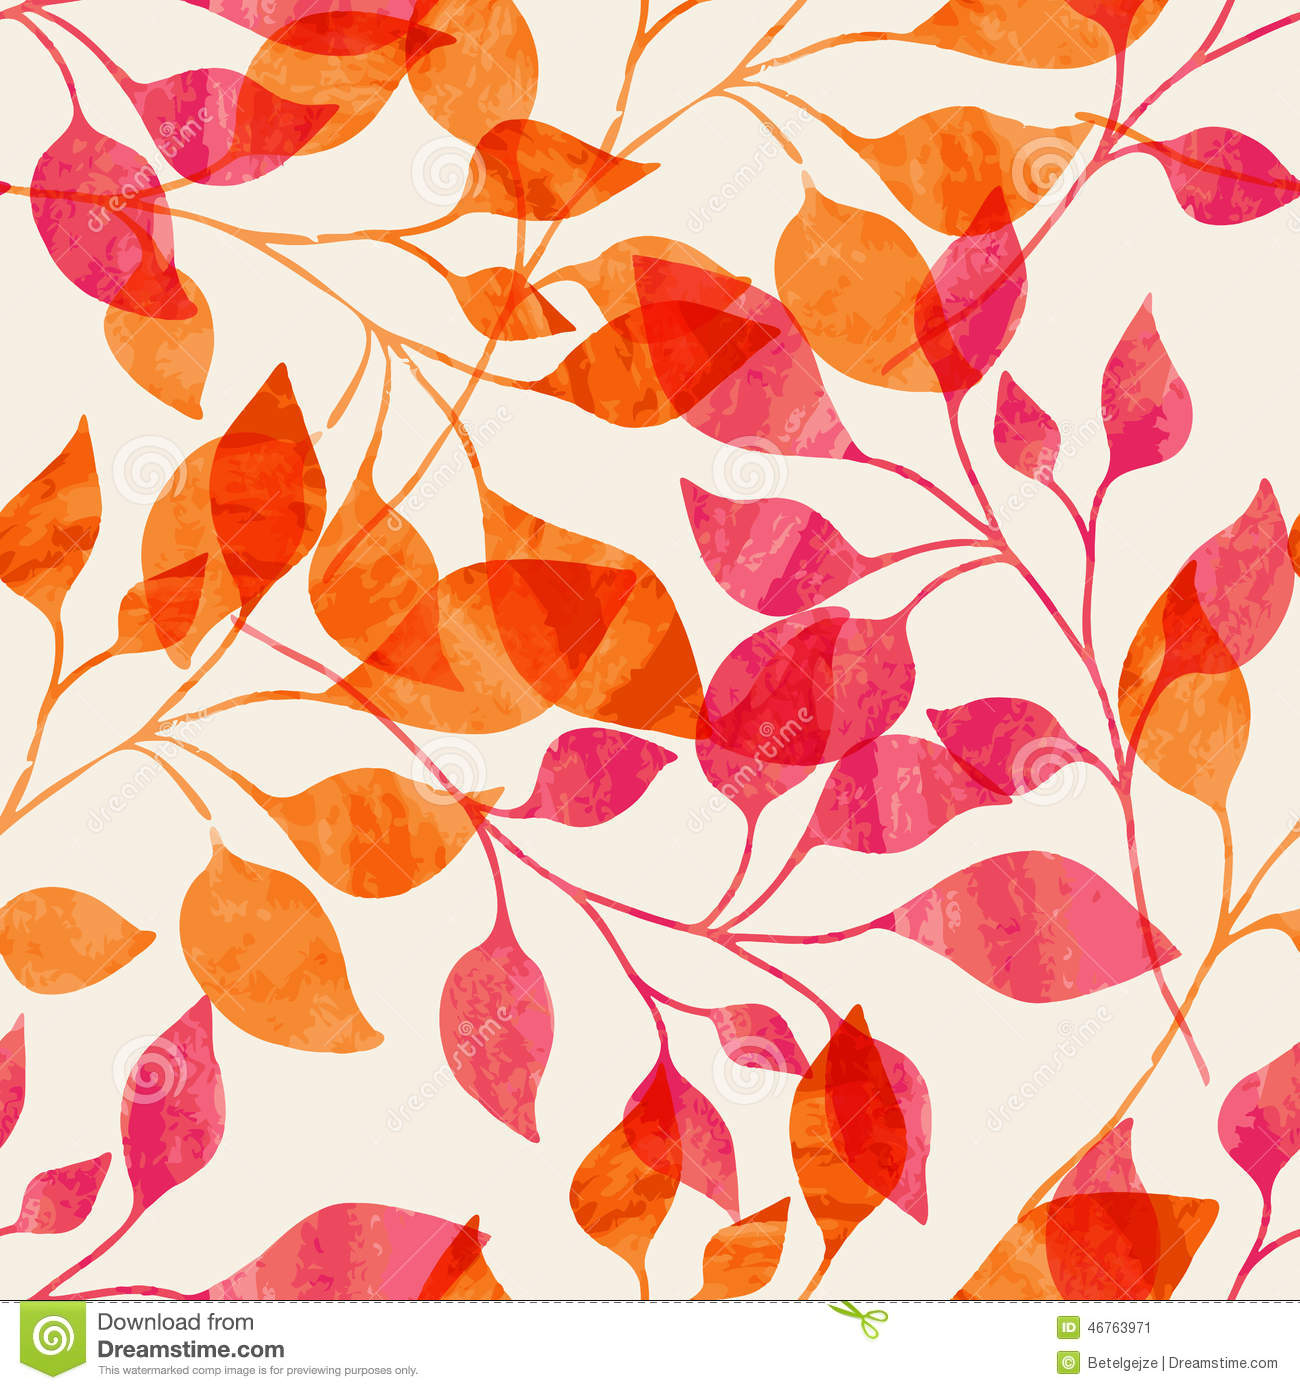 Pink Feathers Falling Wallpaper Watercolor Seamless Pattern With Pink And Orange Autumn